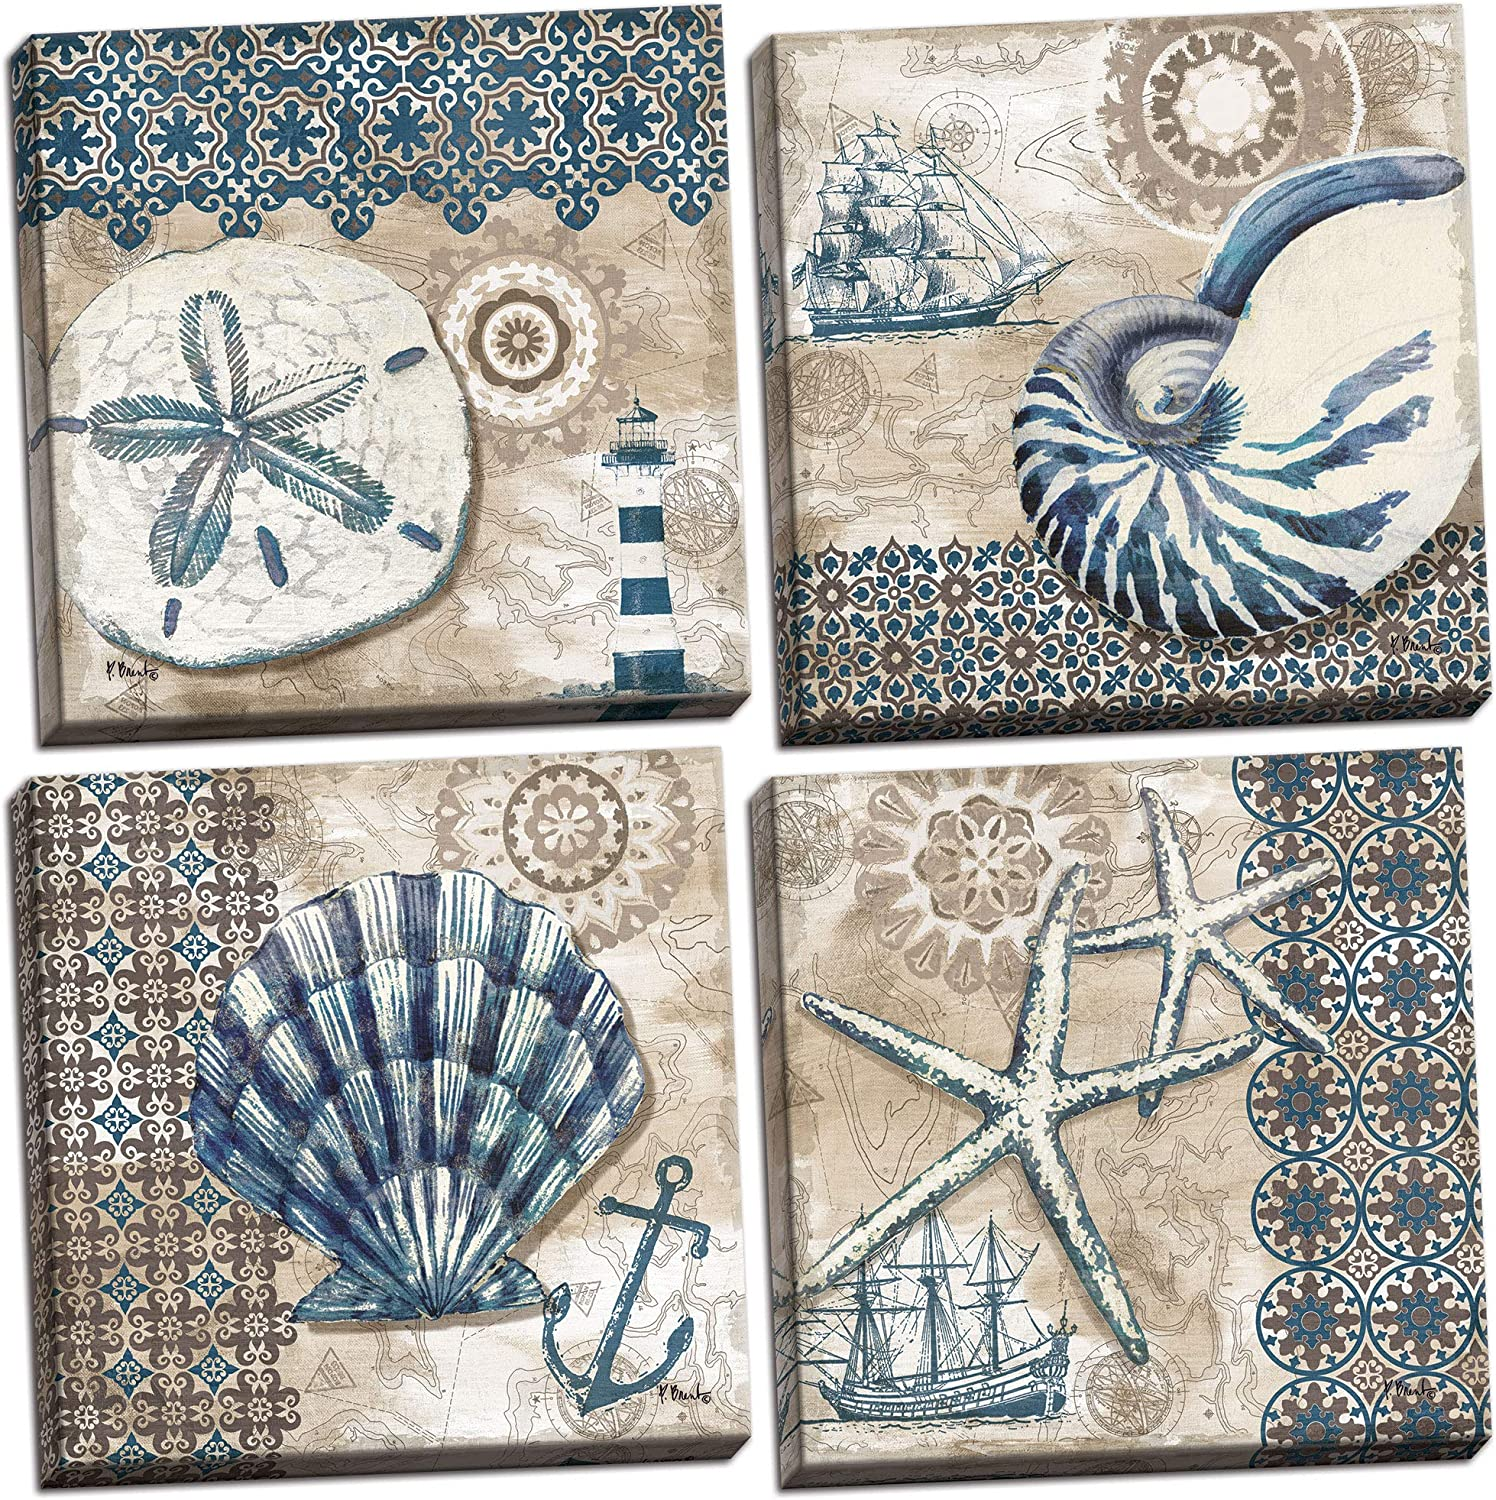 4 Lovely Blue and Brown Ocean Seashell Sand Dollar and Star Fish Collage Poster Prints; Nautical Decor, Four 12 by 12-Inch Canvases; Ready to Hang!